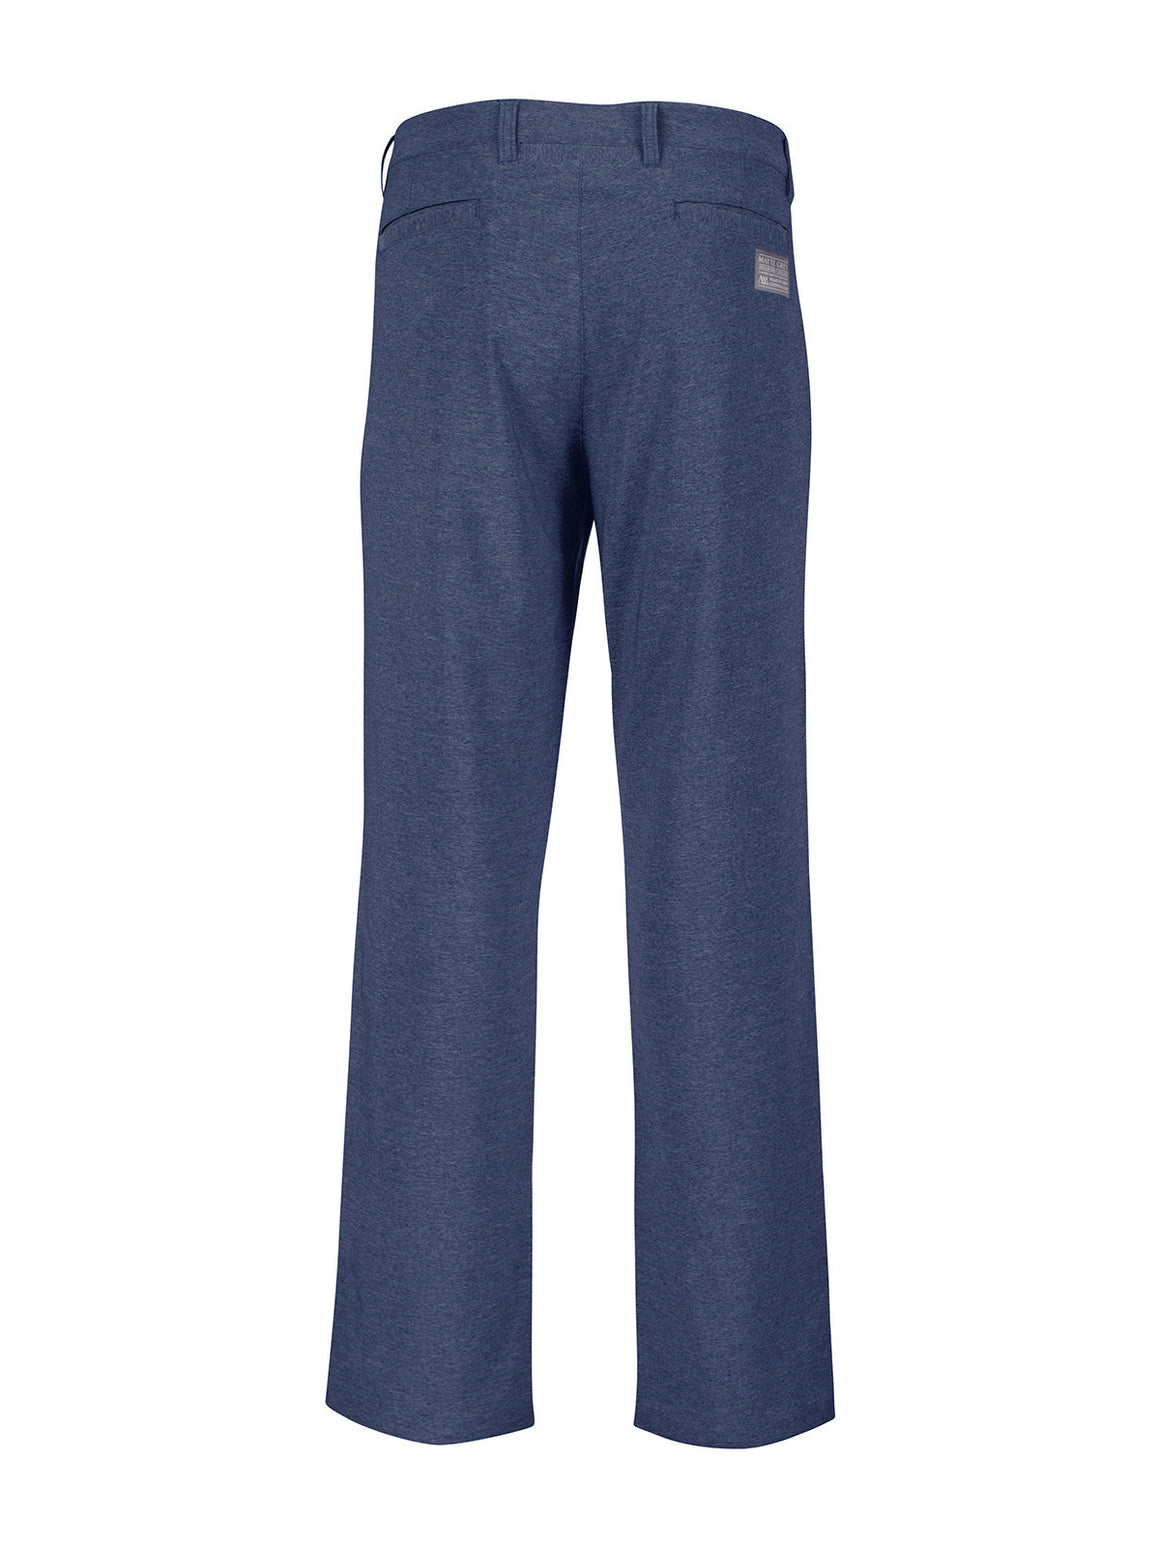 Trekker FIT101 Pant - Dusty Blue